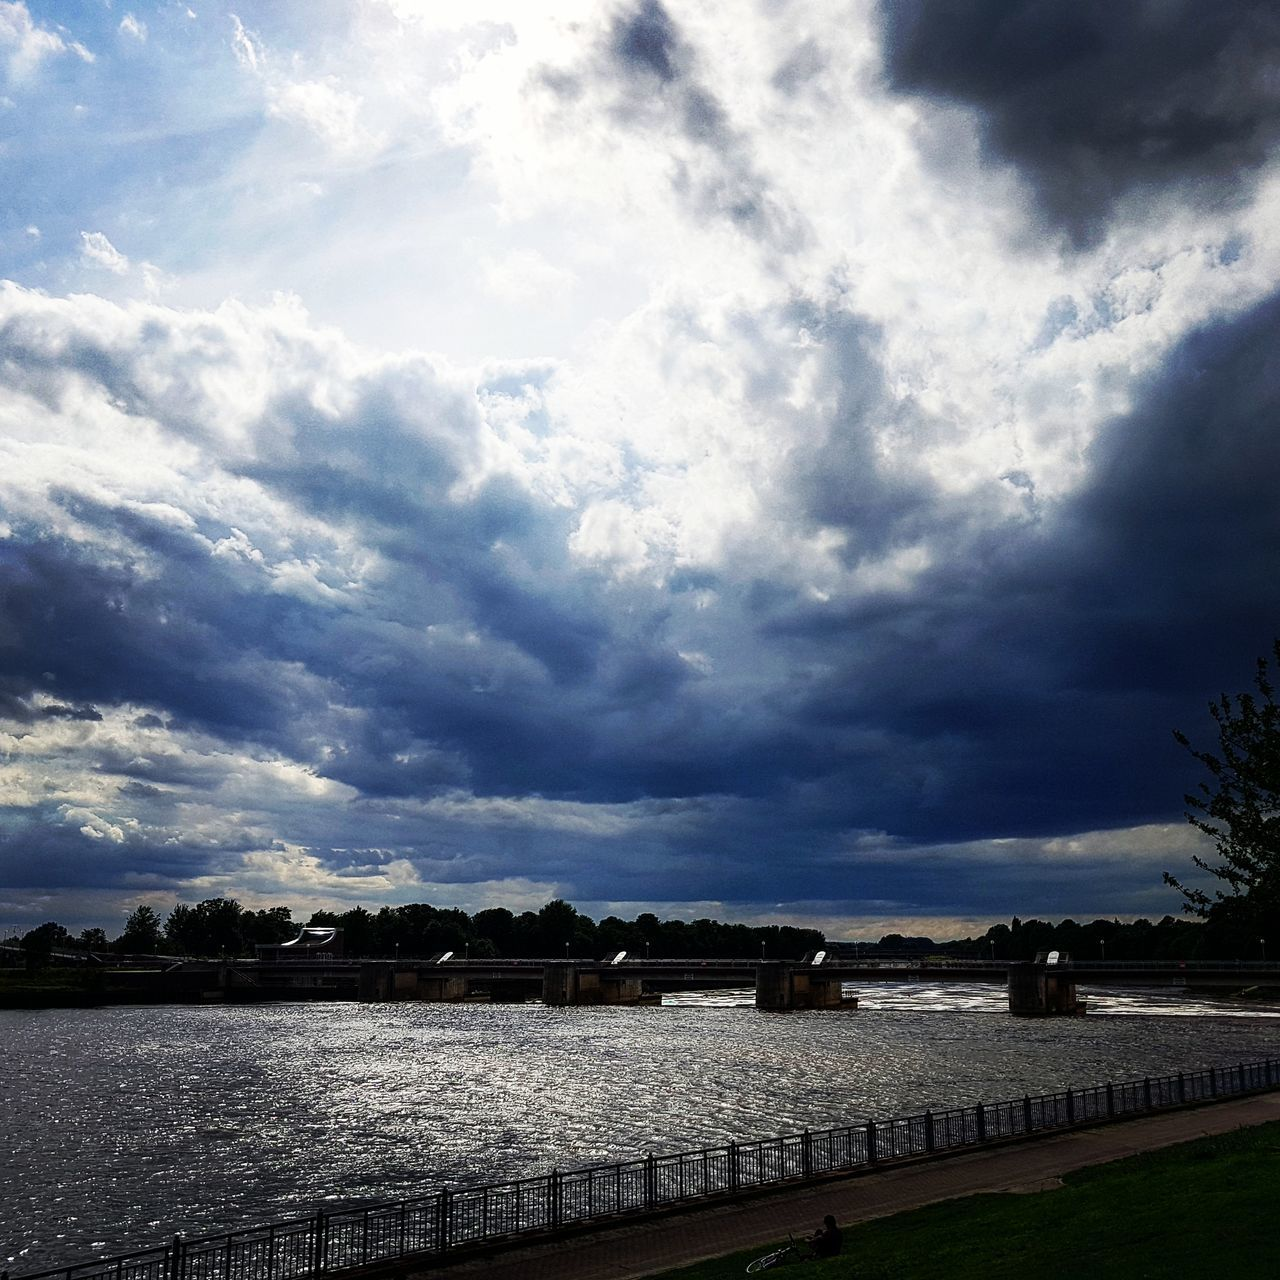 cloud - sky, sky, water, river, nature, tranquility, weather, tranquil scene, no people, outdoors, scenics, beauty in nature, landscape, day, storm cloud, tree